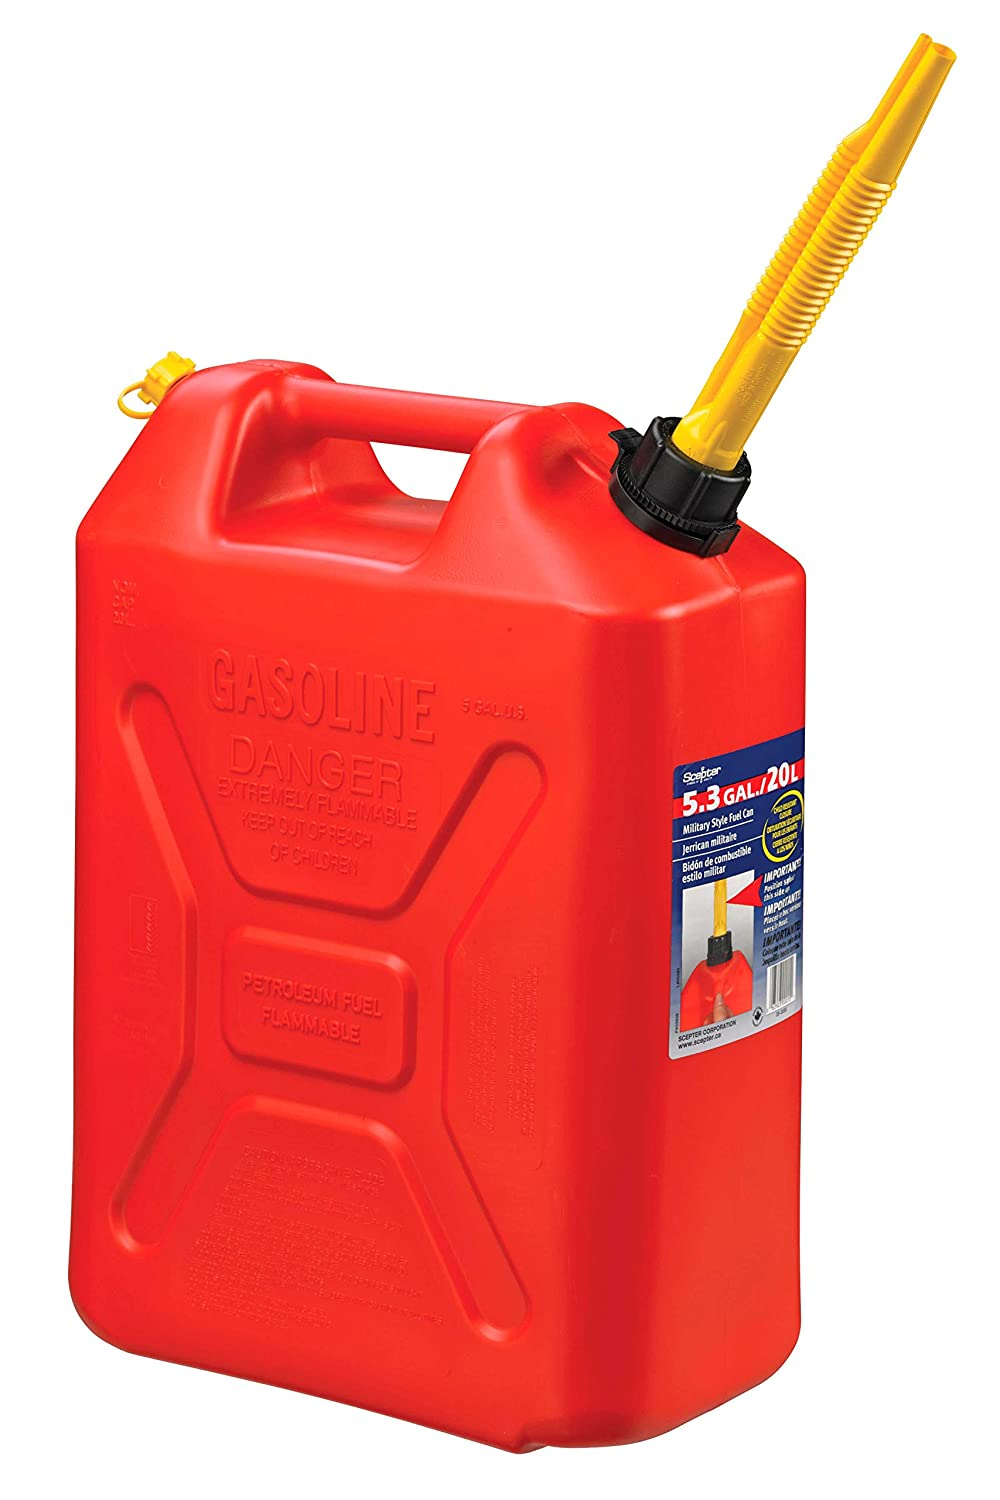 Scepter 3609 20 Liter/5.3 Gallon Fuel Can, Military Style, Red 003609